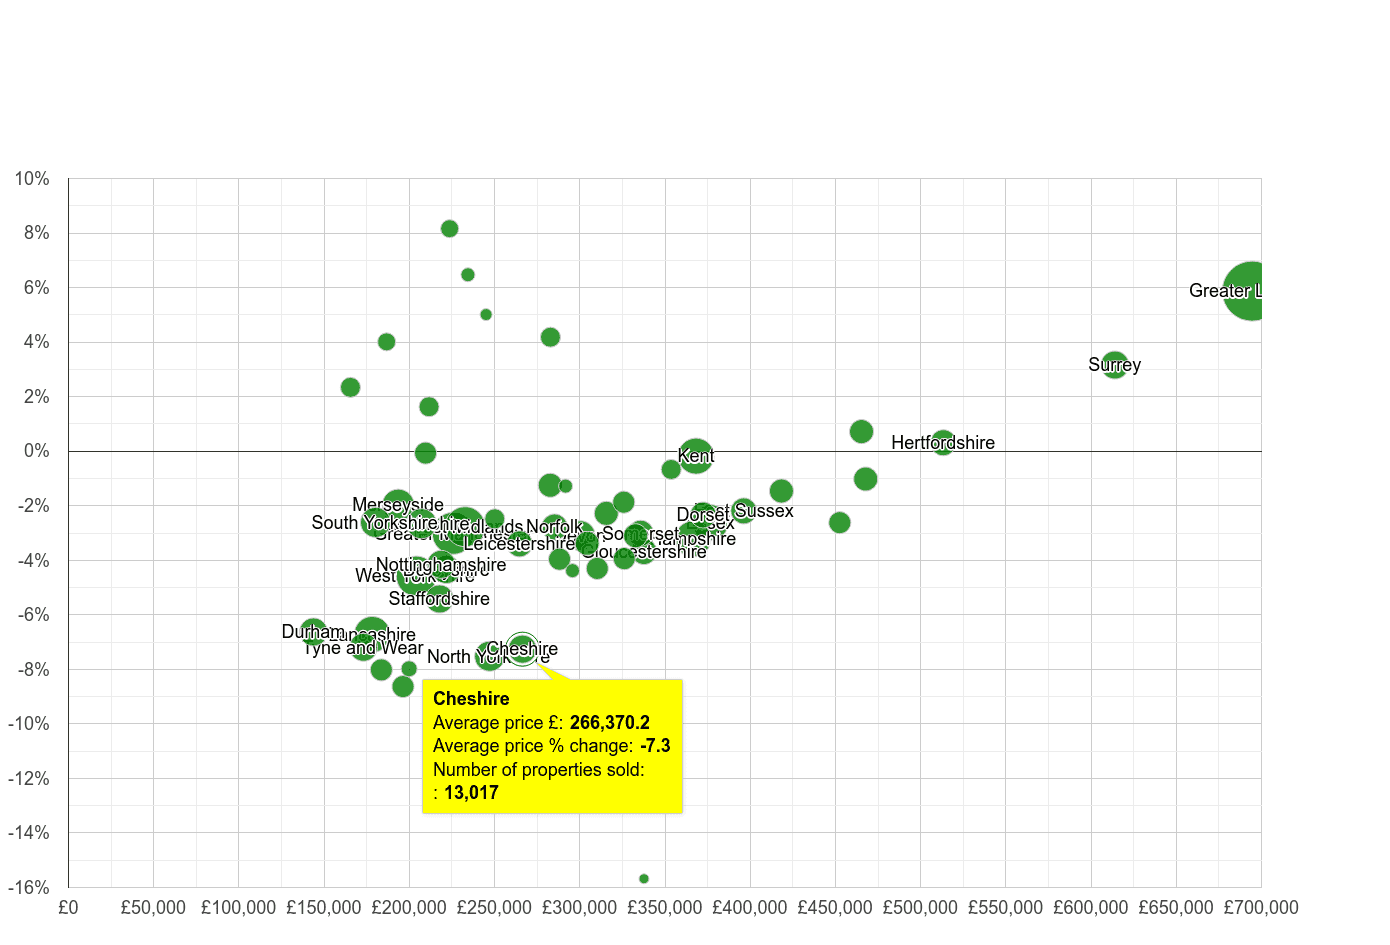 Cheshire house prices compared to other counties